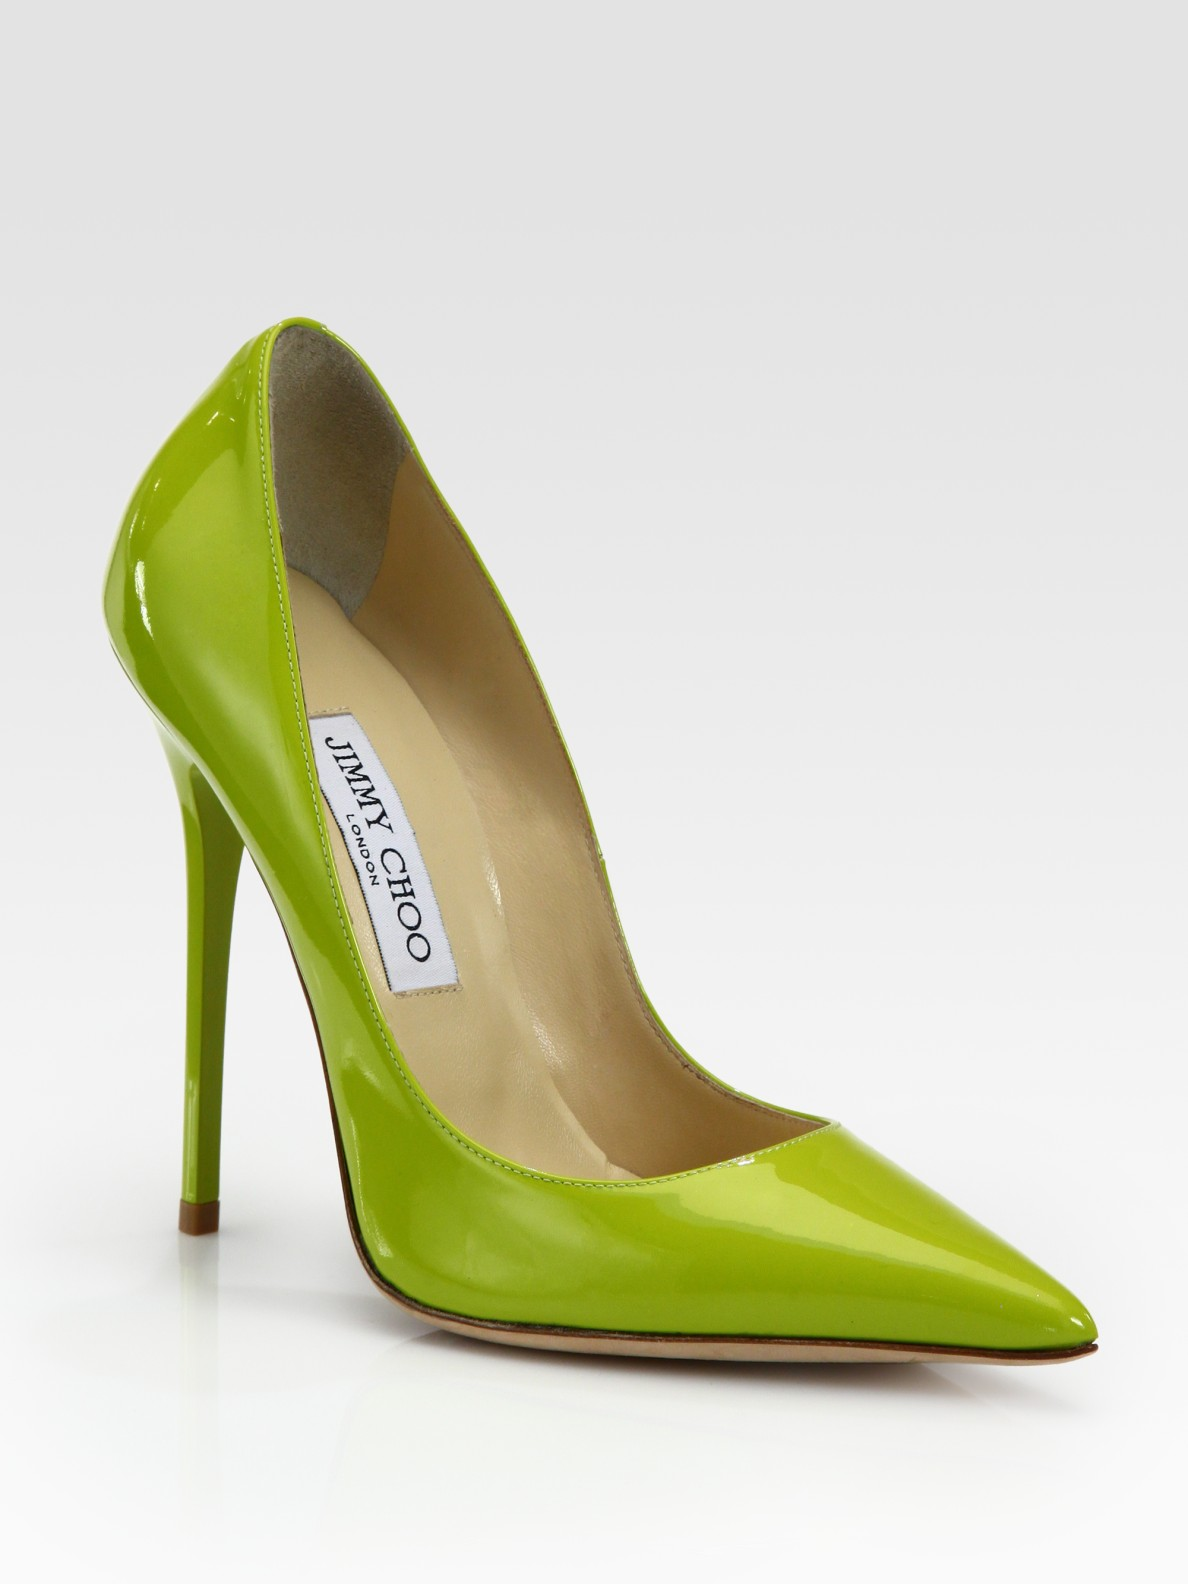 Lyst Jimmy Choo Anouk Patent Leather Pumps In Green